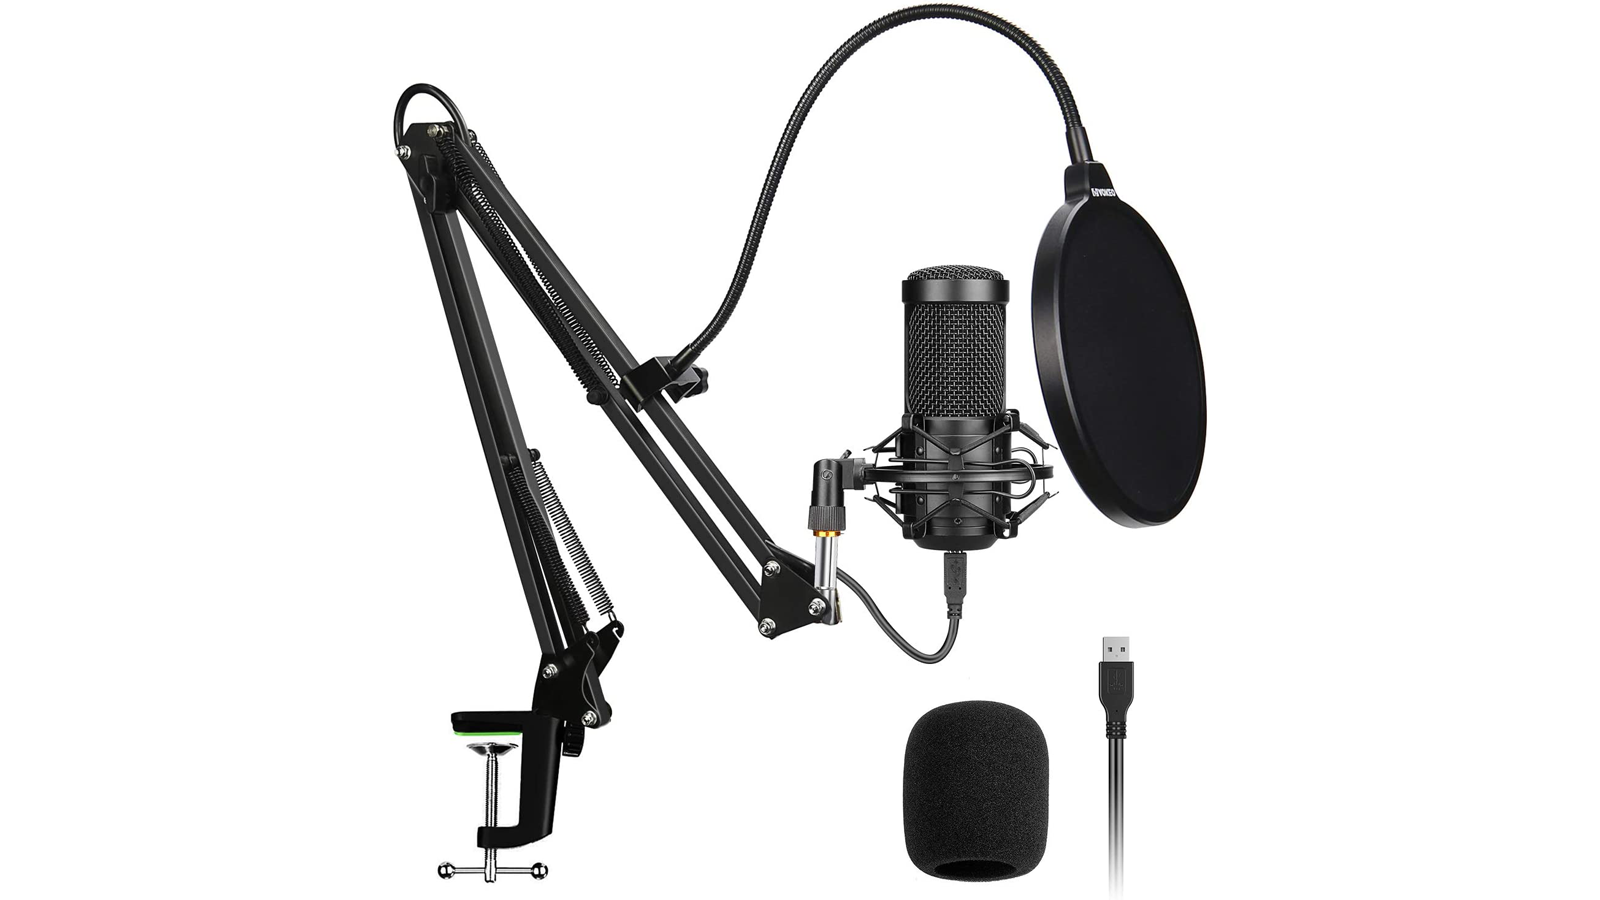 This Cardioid USB Microphone Kit is a Good Beginner Office Upgrade